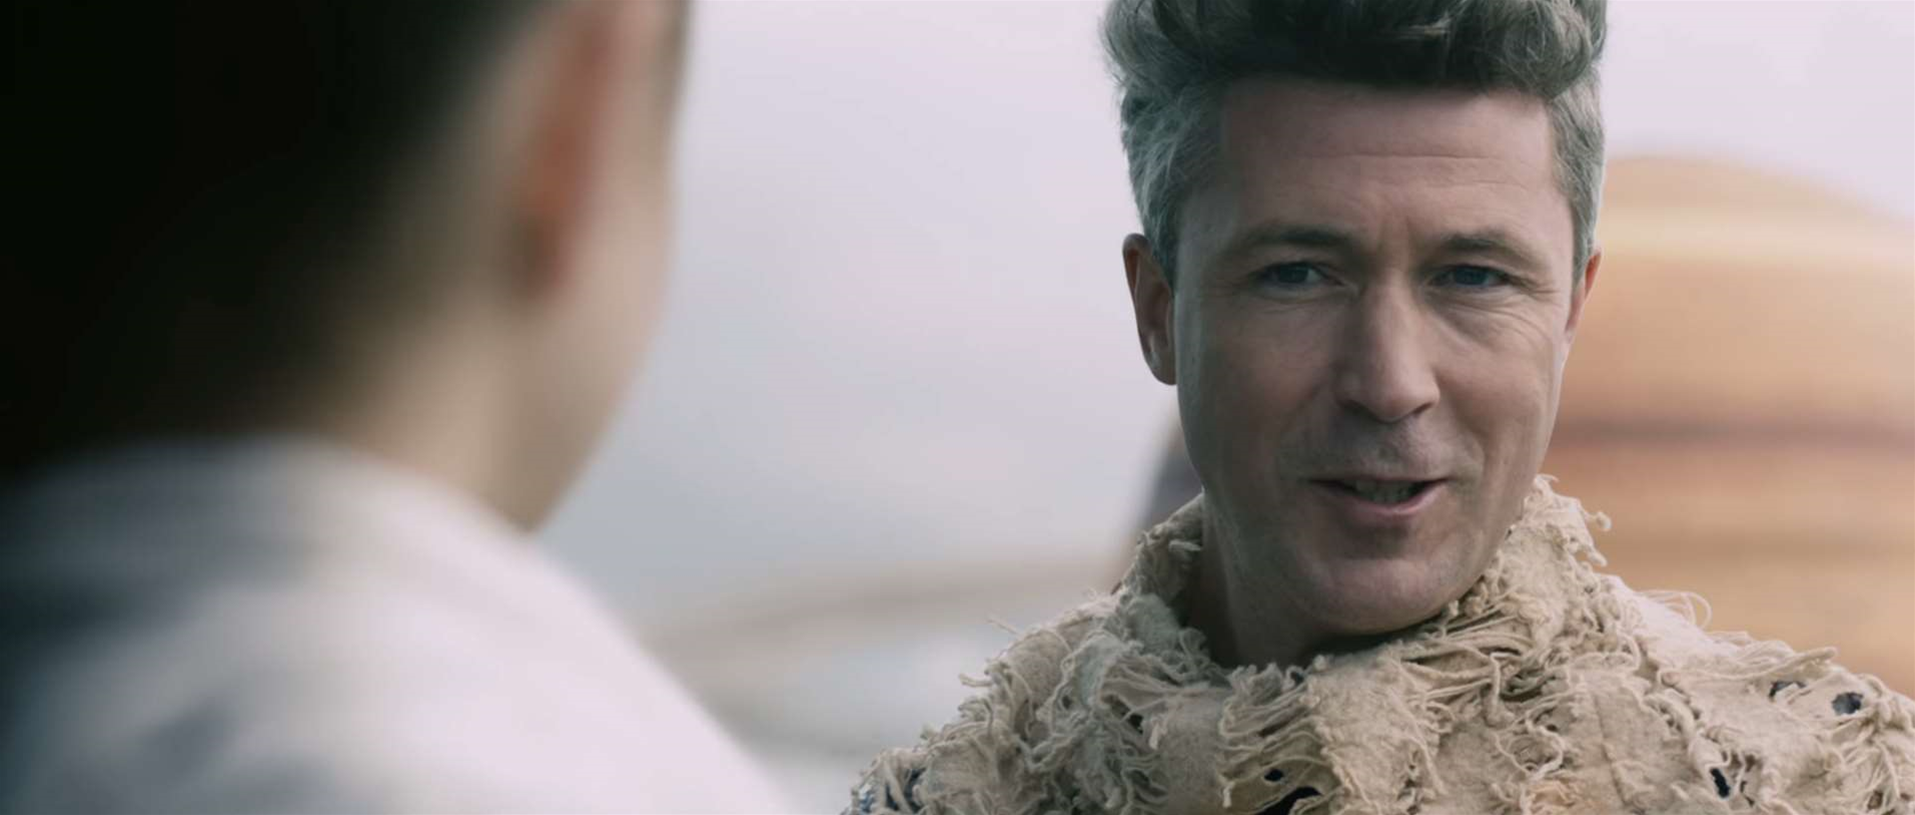 'Littlefinger' Actor From 'Game Of Thrones' Stars In Rosetta Mission Promo